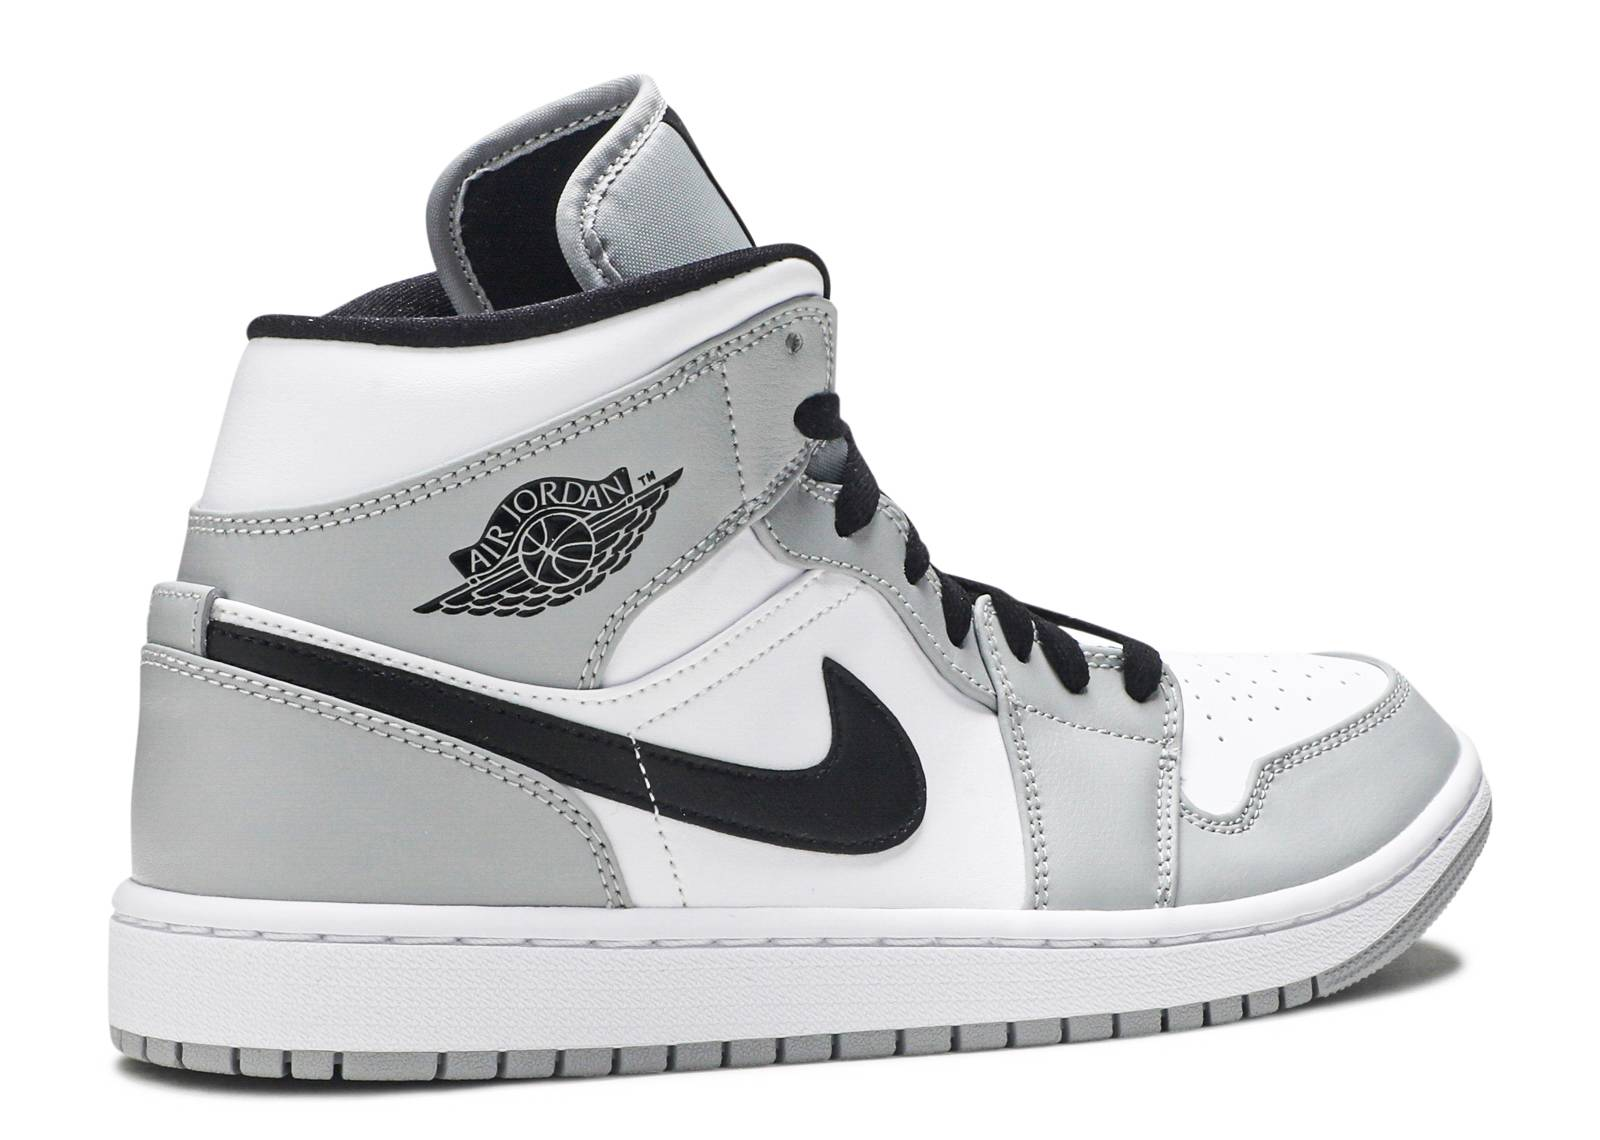 nike air jordan 1 mid smoke grey